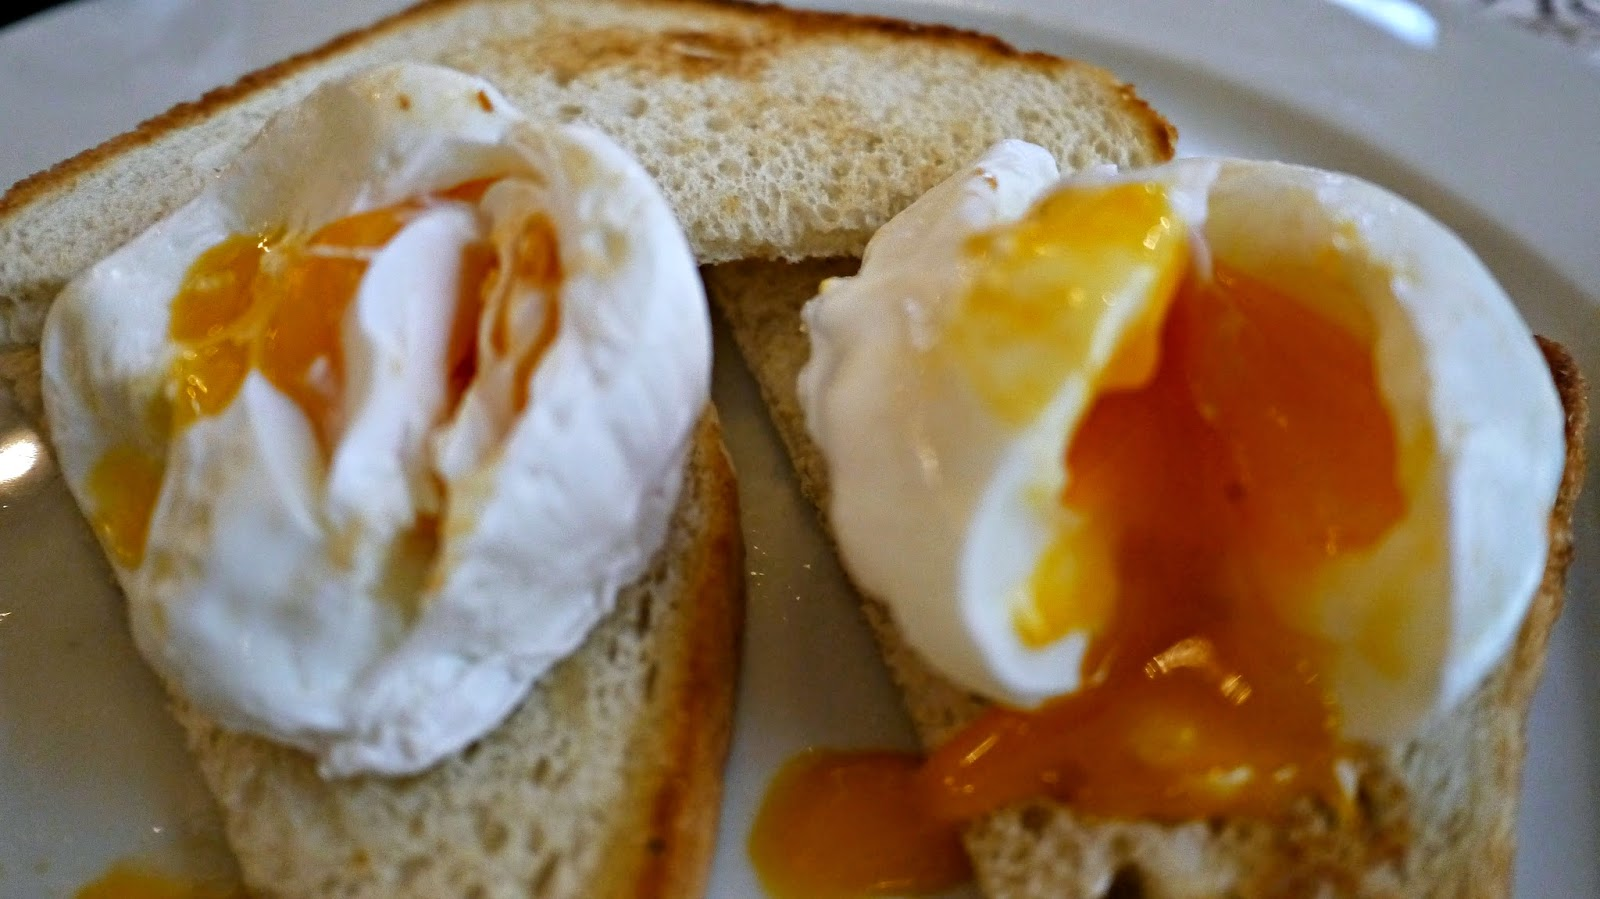 New York Cafe Budapest poached eggs